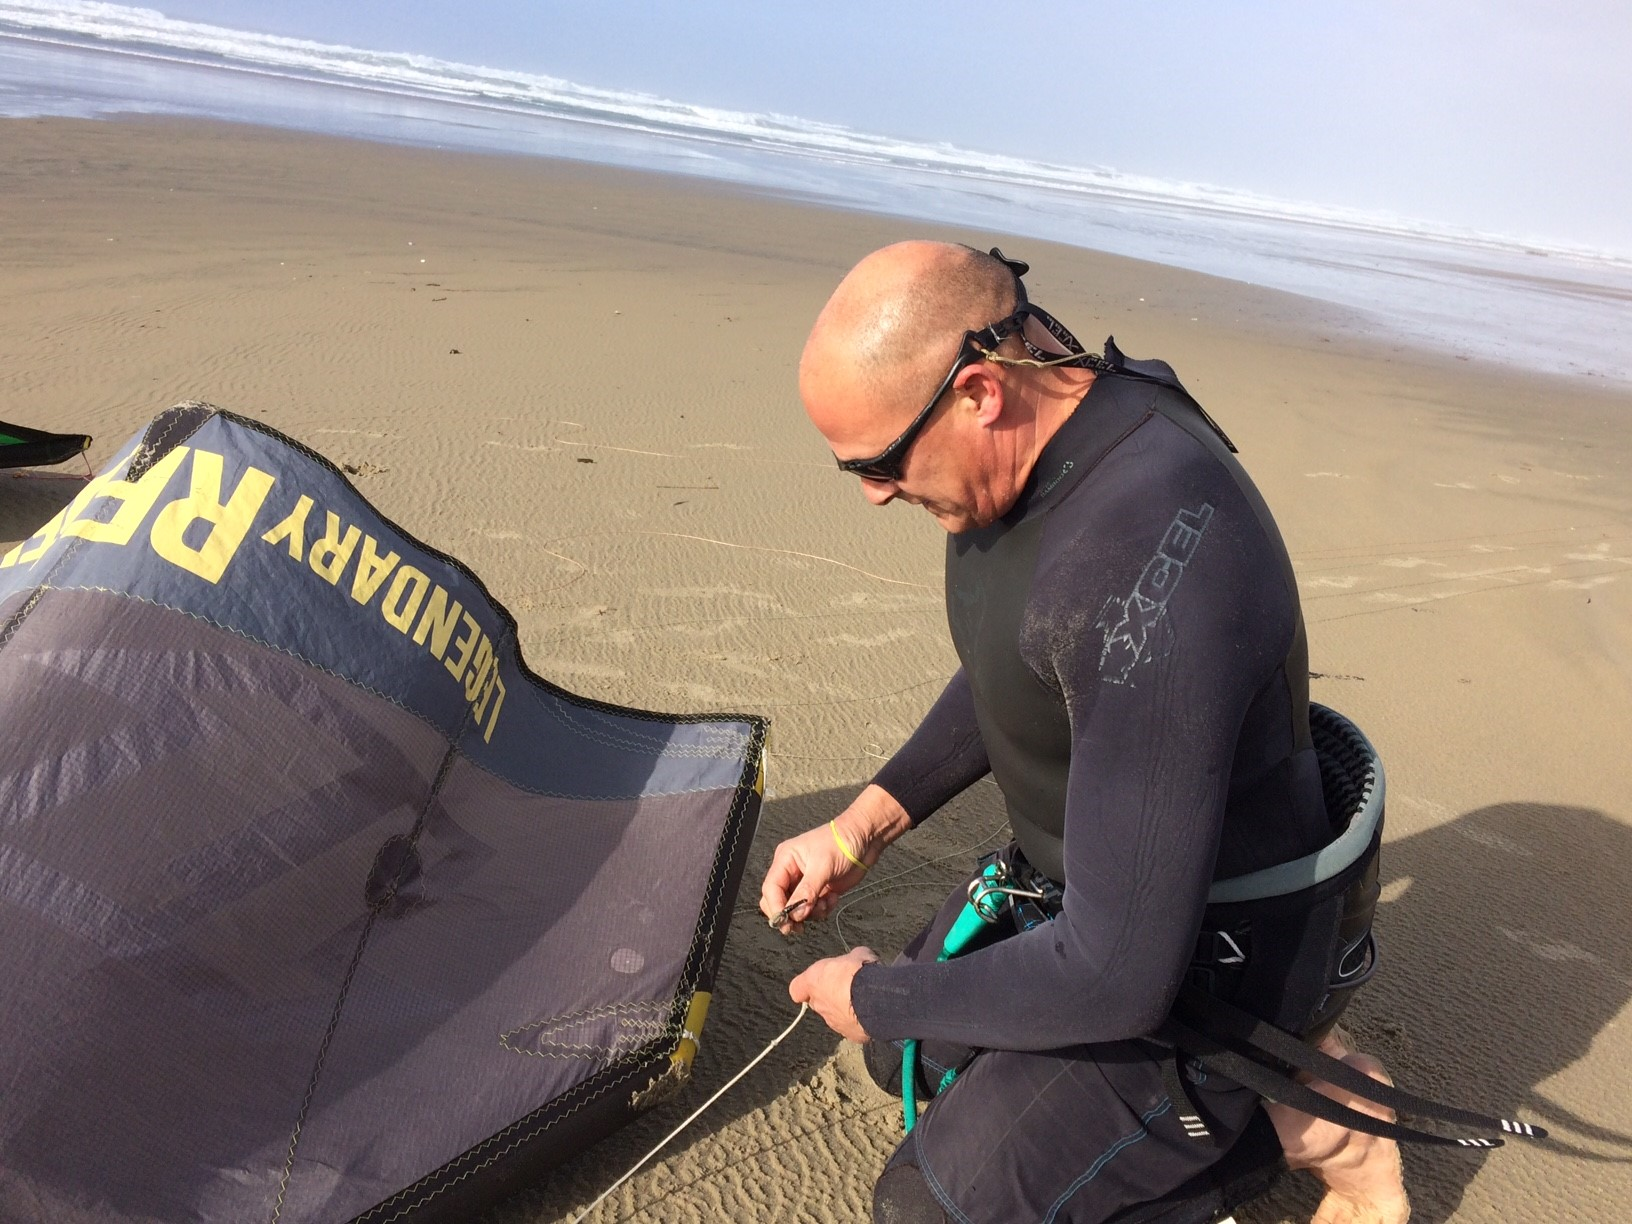 <p>When the worst of the wind passed, the sun came out - and so did kiteboarder Joel Lira. &quot;I'm out here to have some fun,&quot; he said, &quot;and take advantage of what the Oregon coast has to offer.&quot; (SBG)</p>